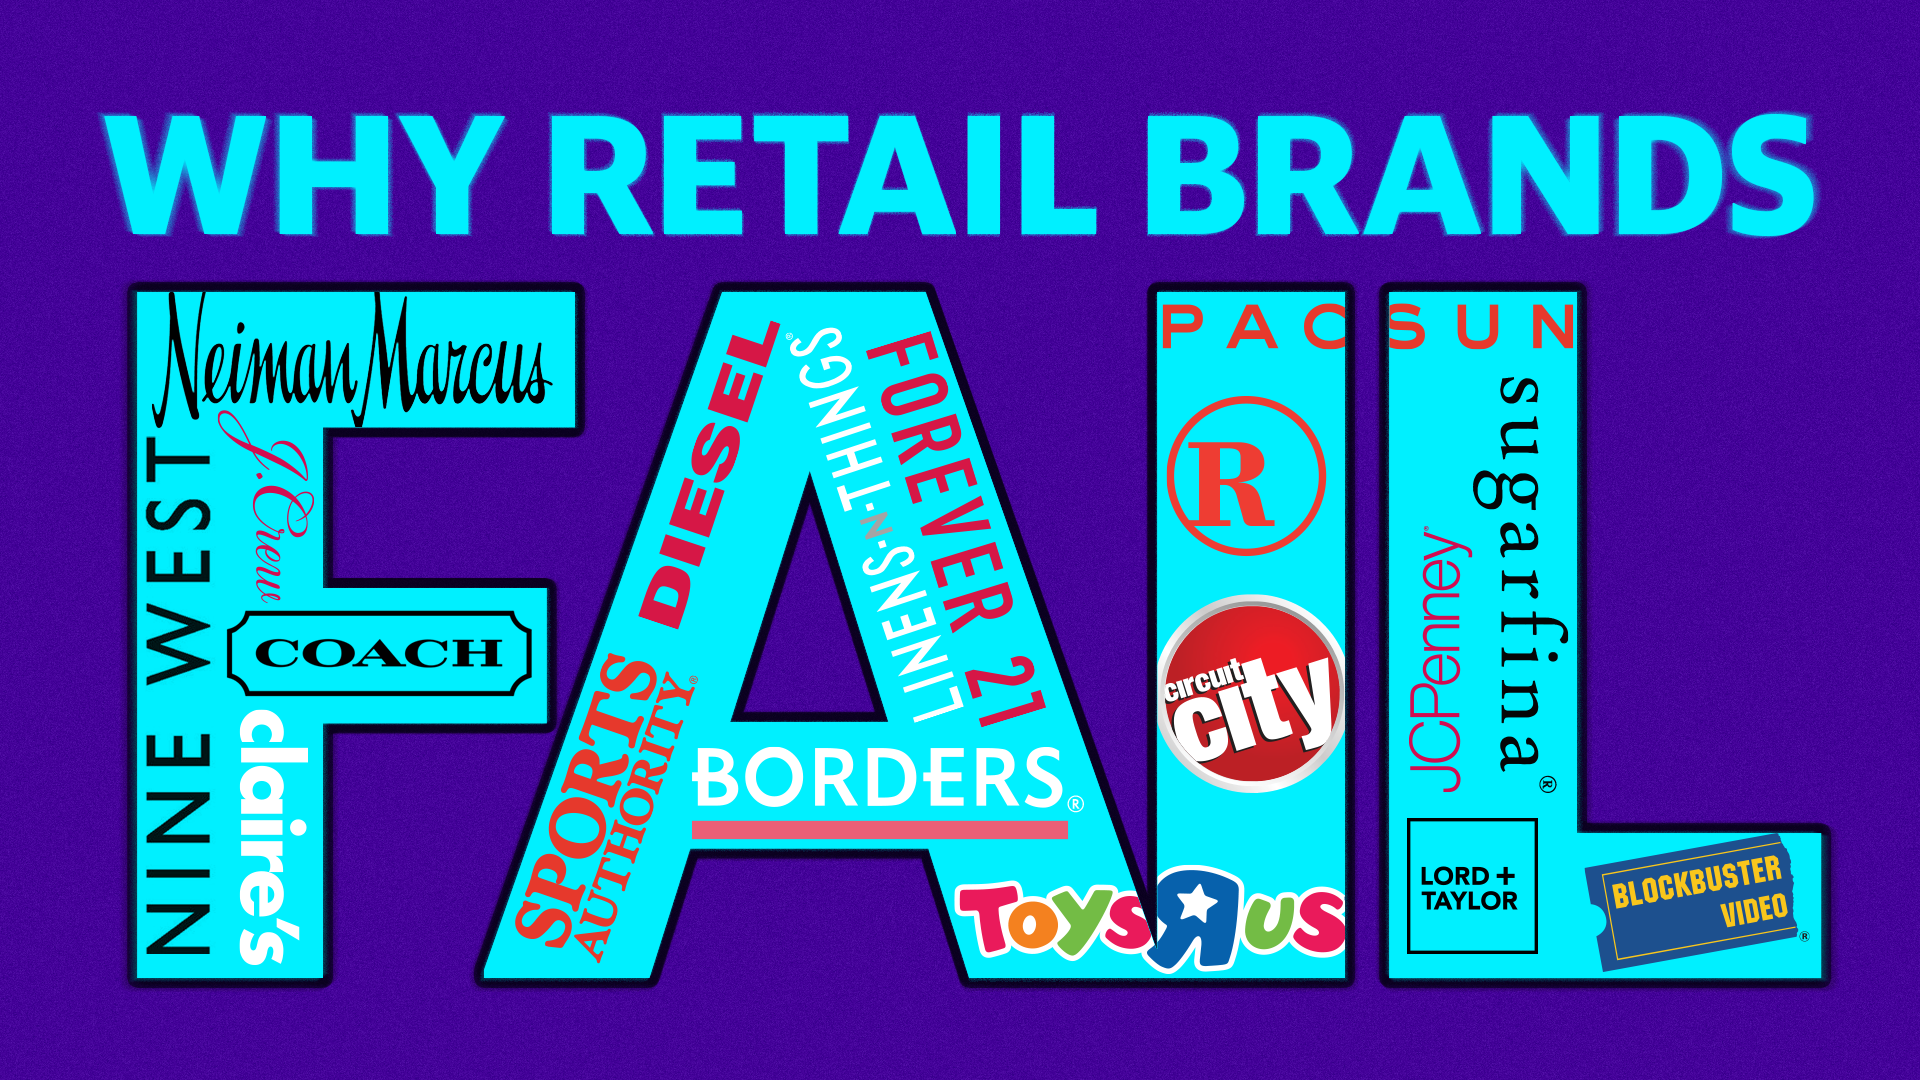 3 reasons why retail brands fail and fade away [Video]